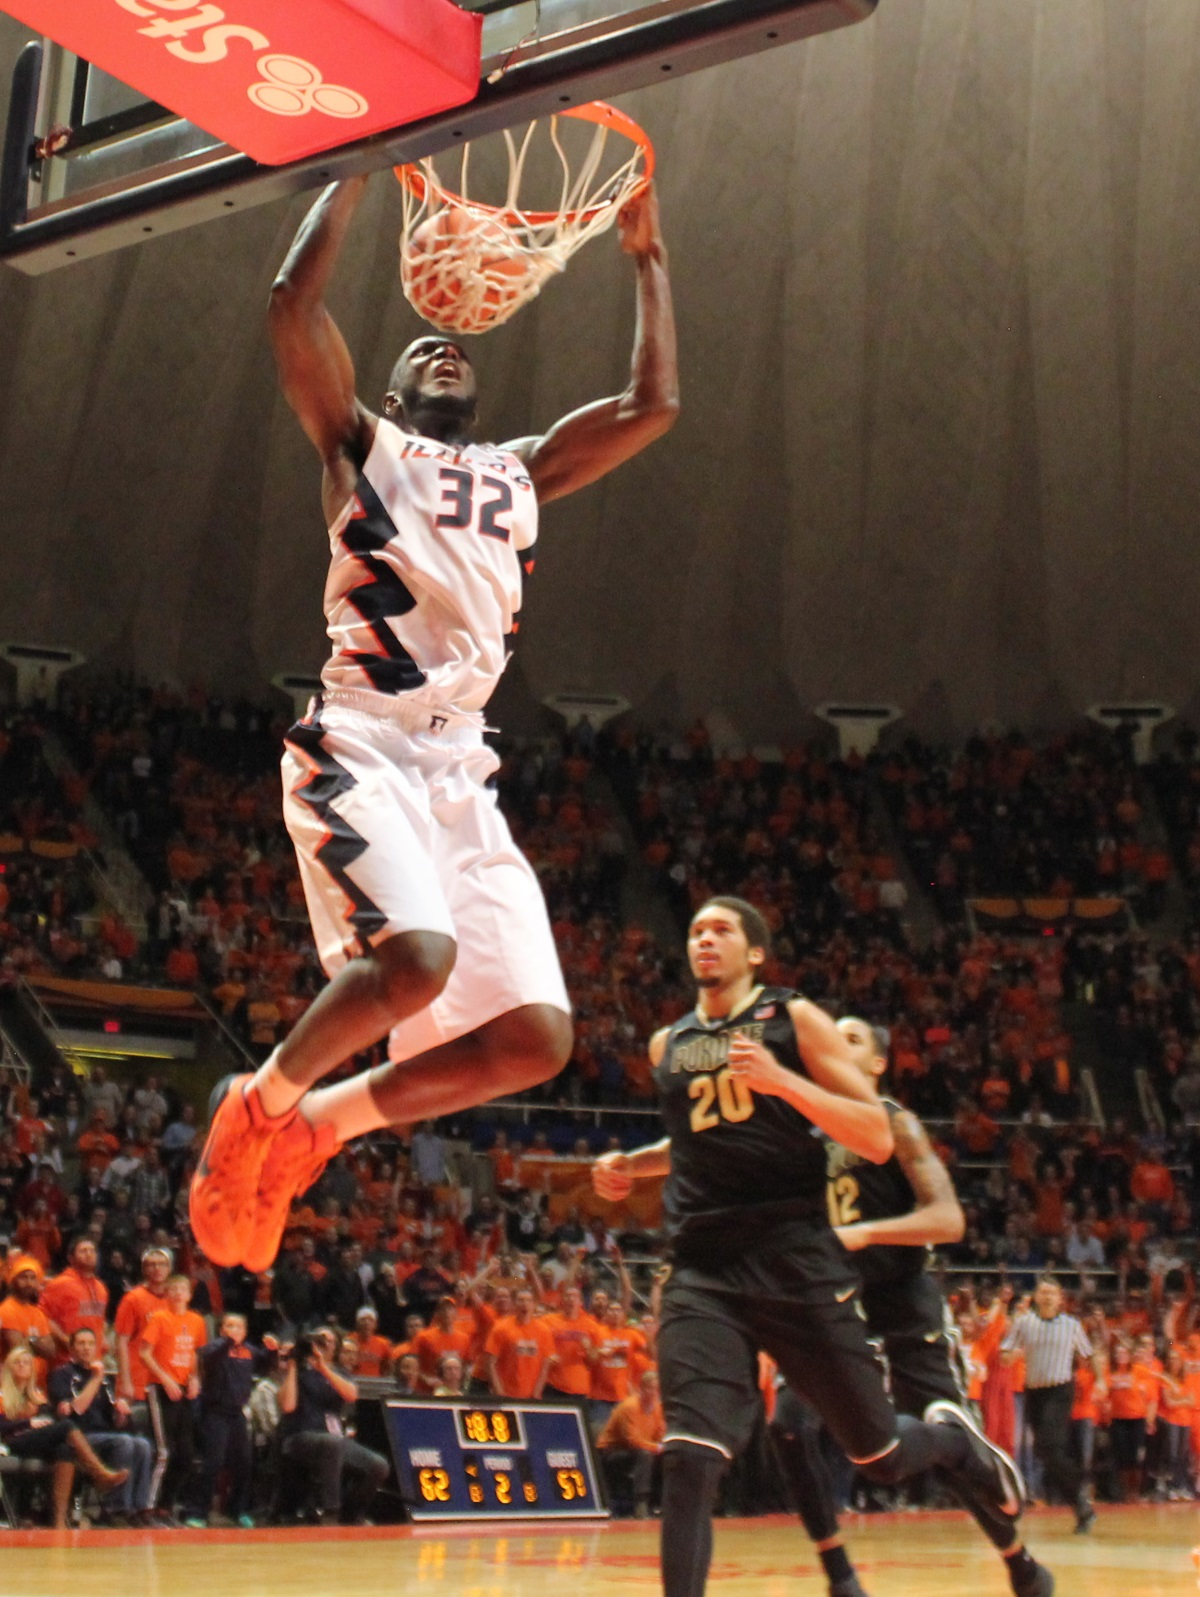 Nnanna Egwu dunks to seal the win versus Purdue